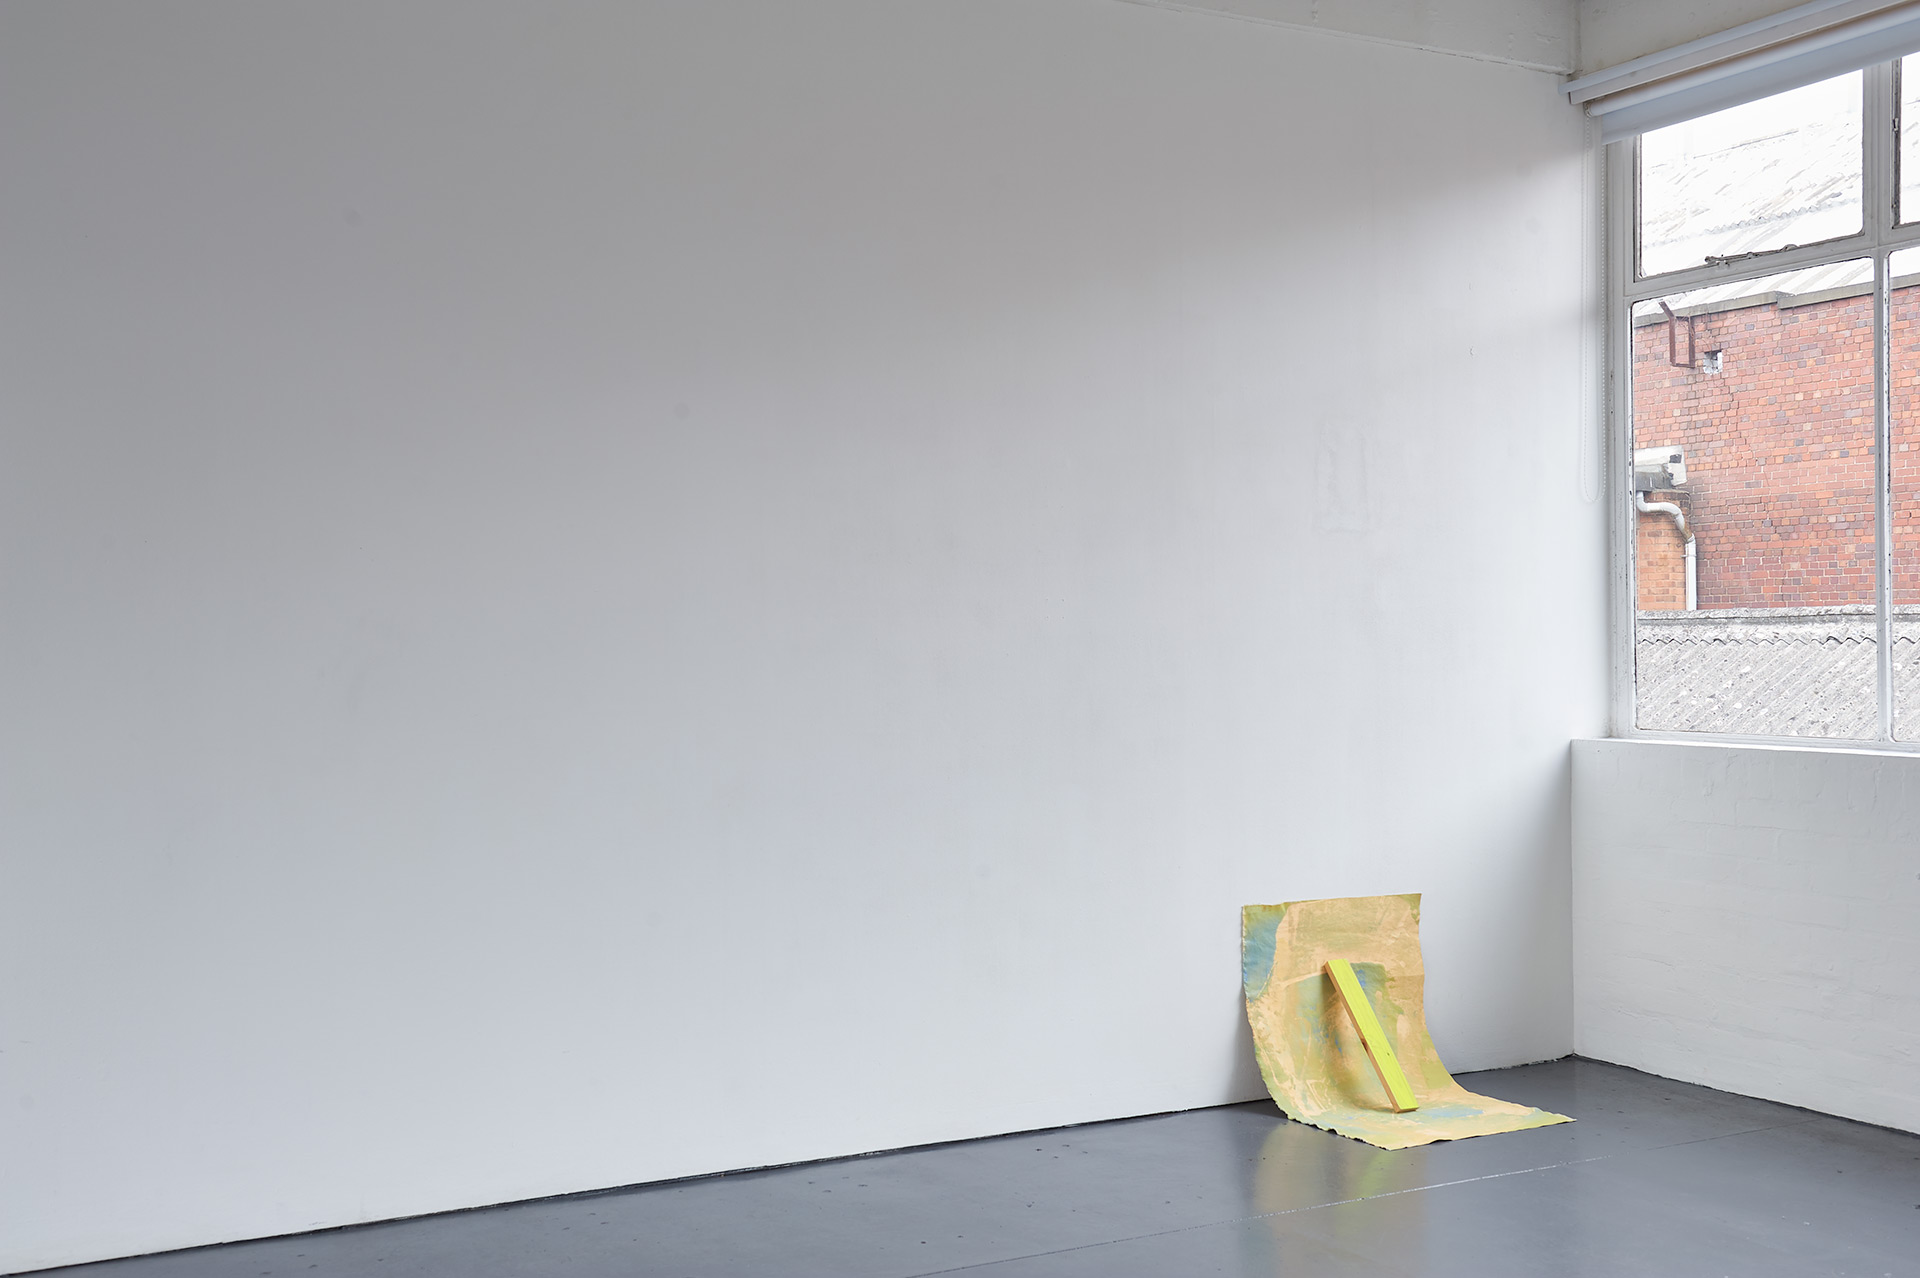 A rectangular piece of abstractly painted canvas in yellow, green and blue tones is propped against a wall with a piece of wood painted luminous yellow.